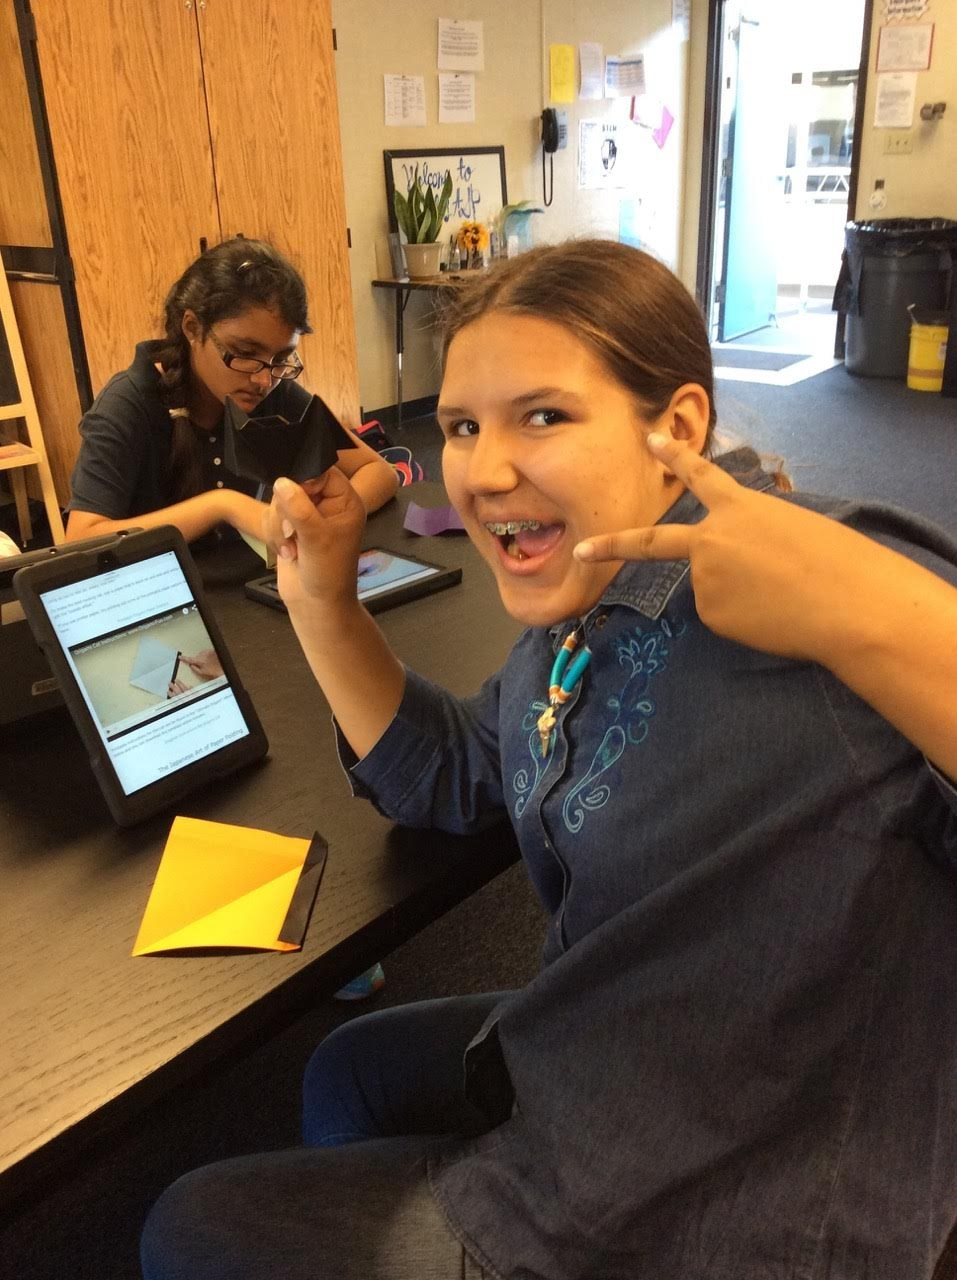 Student on iPad working on a project and giving us a candid peace sign!